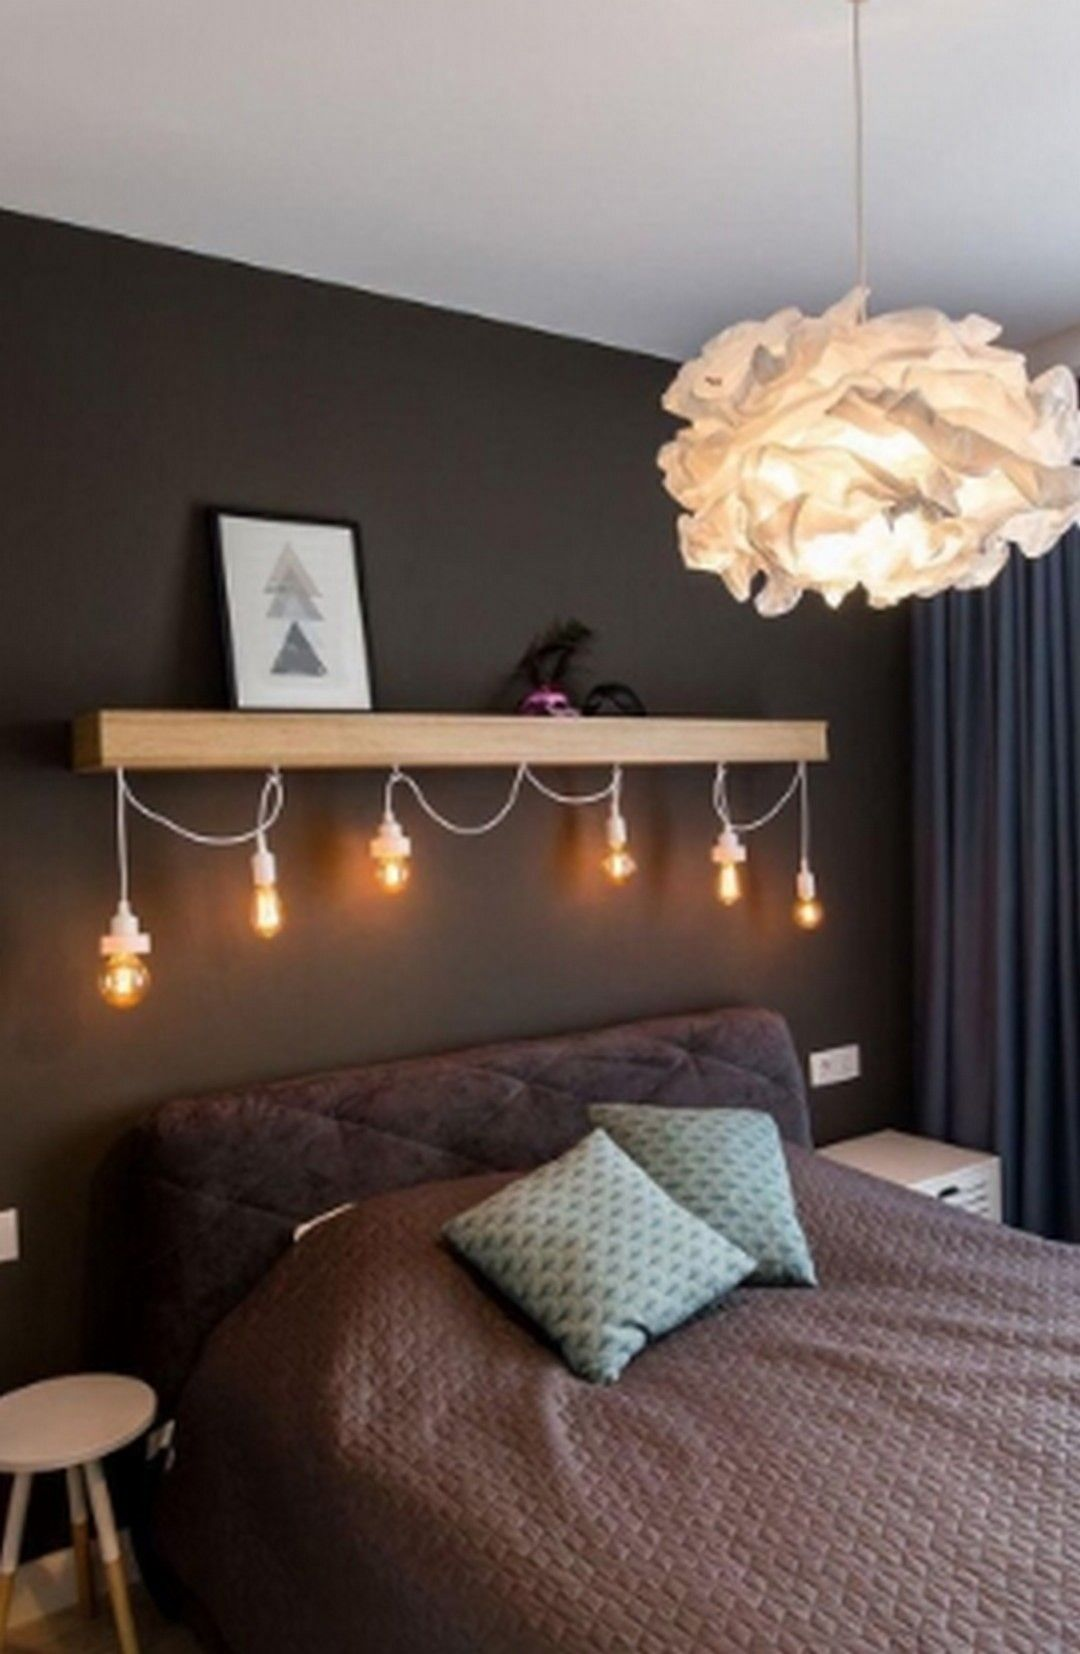 7 Dream Bedroom Lamp Ideas That Hang In 2020 Colorful Apartment Bedroom Decor Home Decor